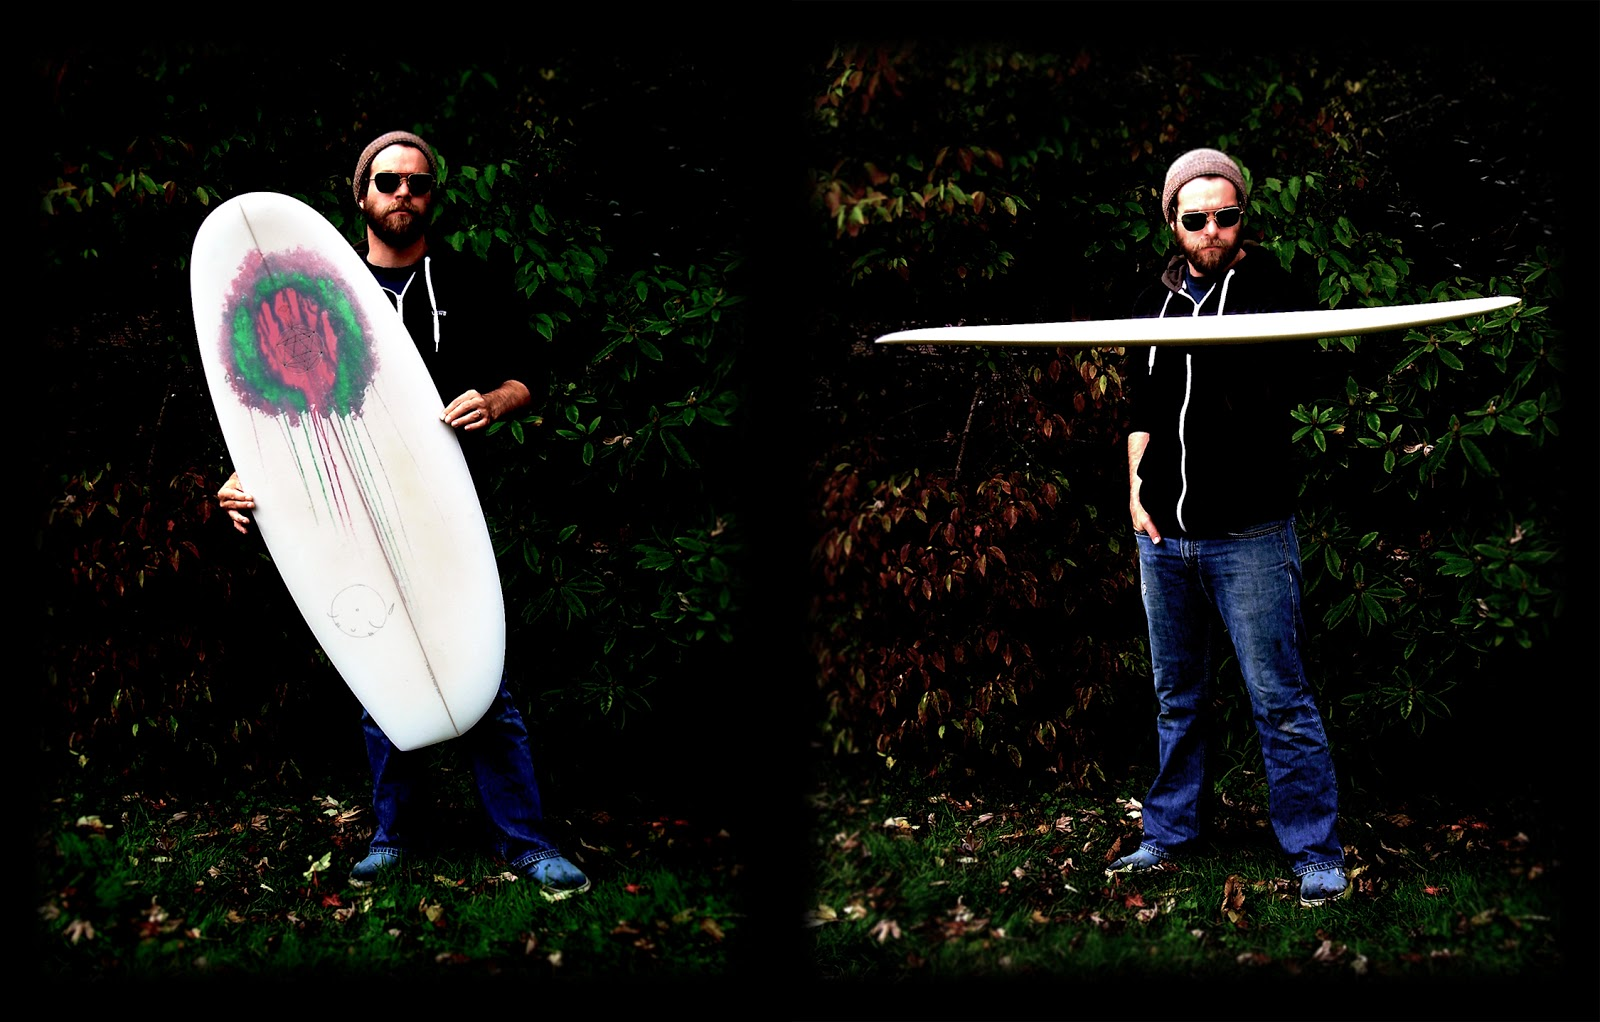 woodfoot surfboards